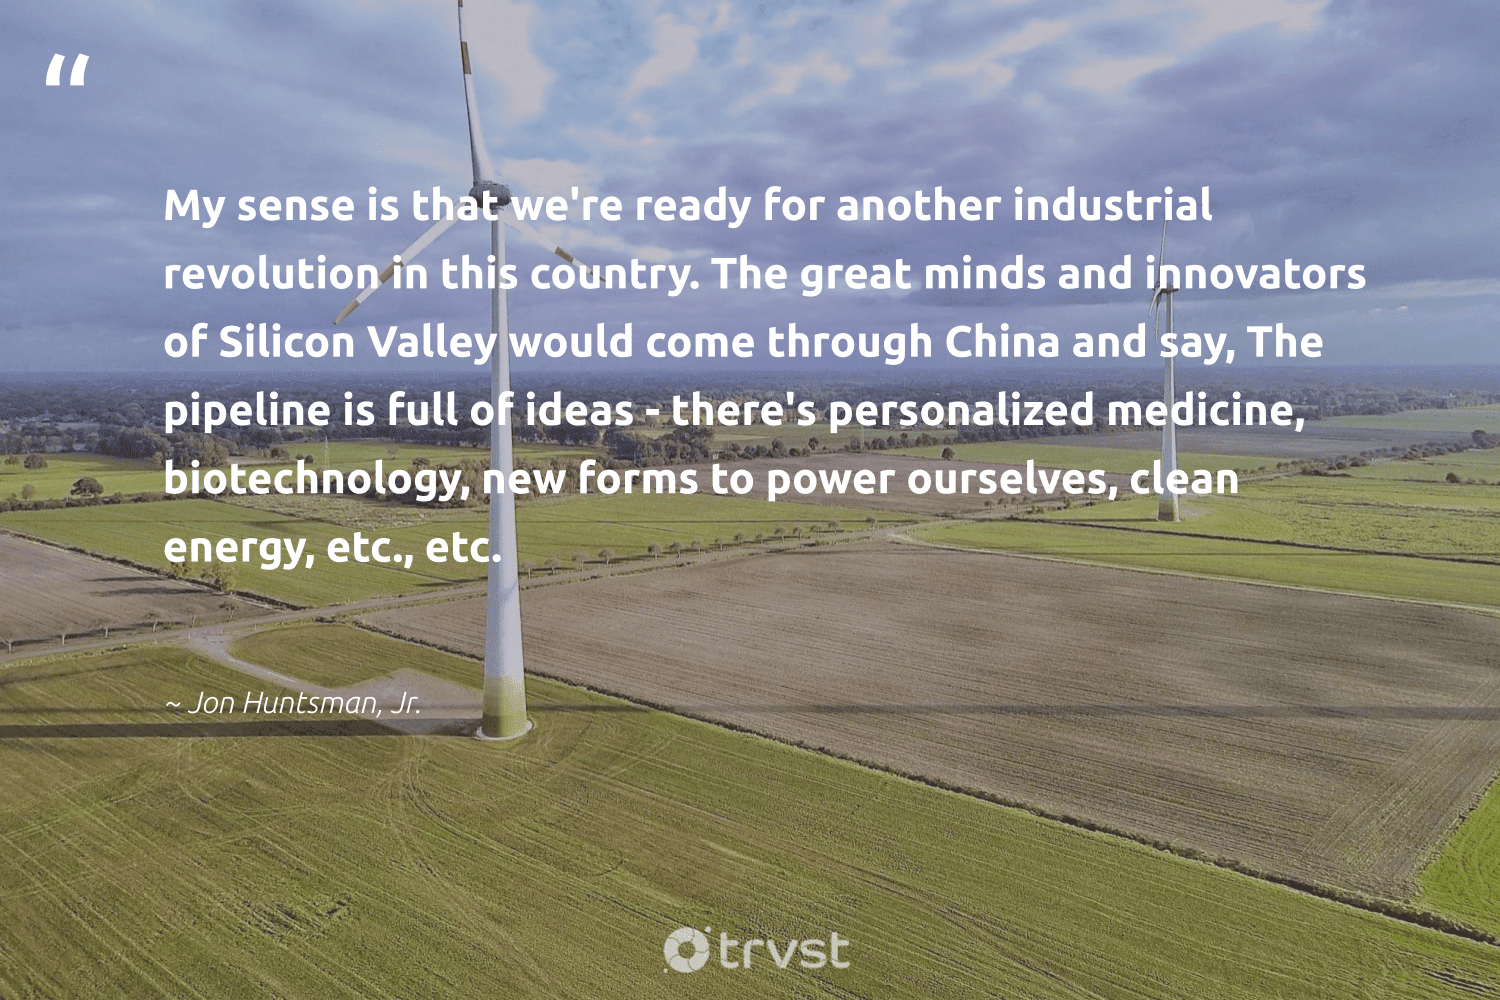 """""""My sense is that we're ready for another industrial revolution in this country. The great minds and innovators of Silicon Valley would come through China and say, The pipeline is full of ideas - there's personalized medicine, biotechnology, new forms to power ourselves, clean energy, etc., etc.""""  - Jon Huntsman, Jr. #trvst #quotes #renewableenergy #energy #cleanenergy #100percentclean #sustainable #carbon #changetheworld #greenenergy #zerocarbon #planetearth"""